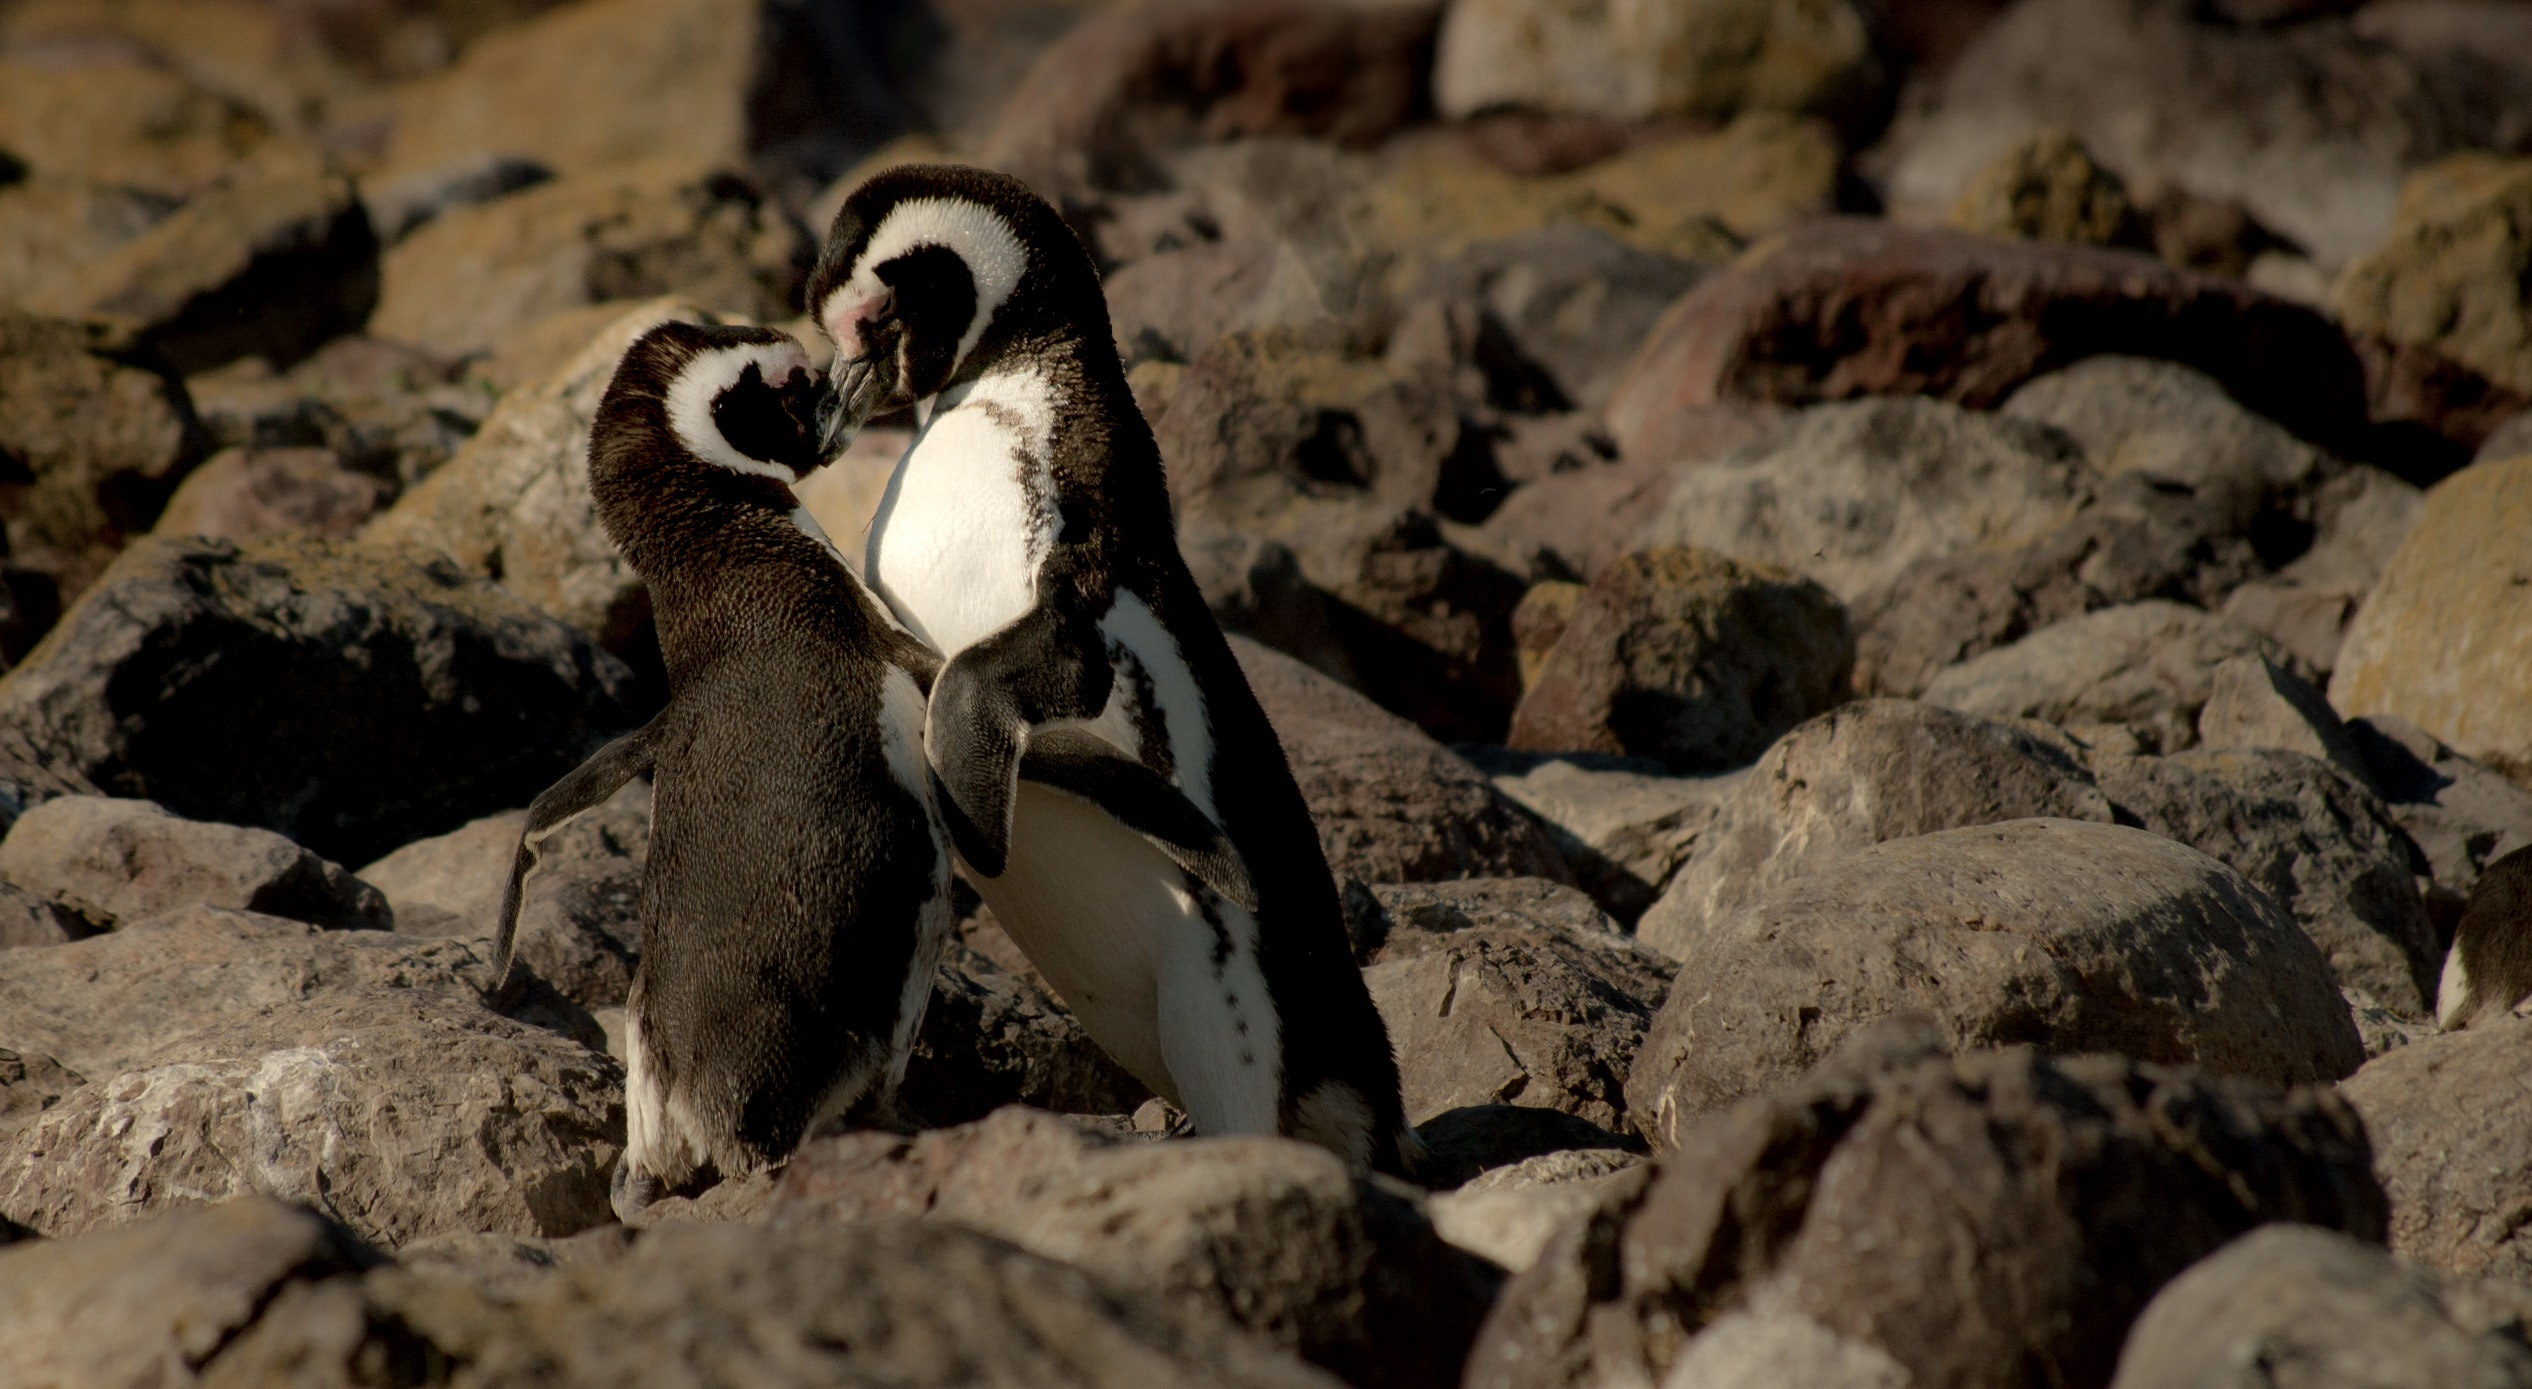 Penguins in love form a heart shape together with their plumage